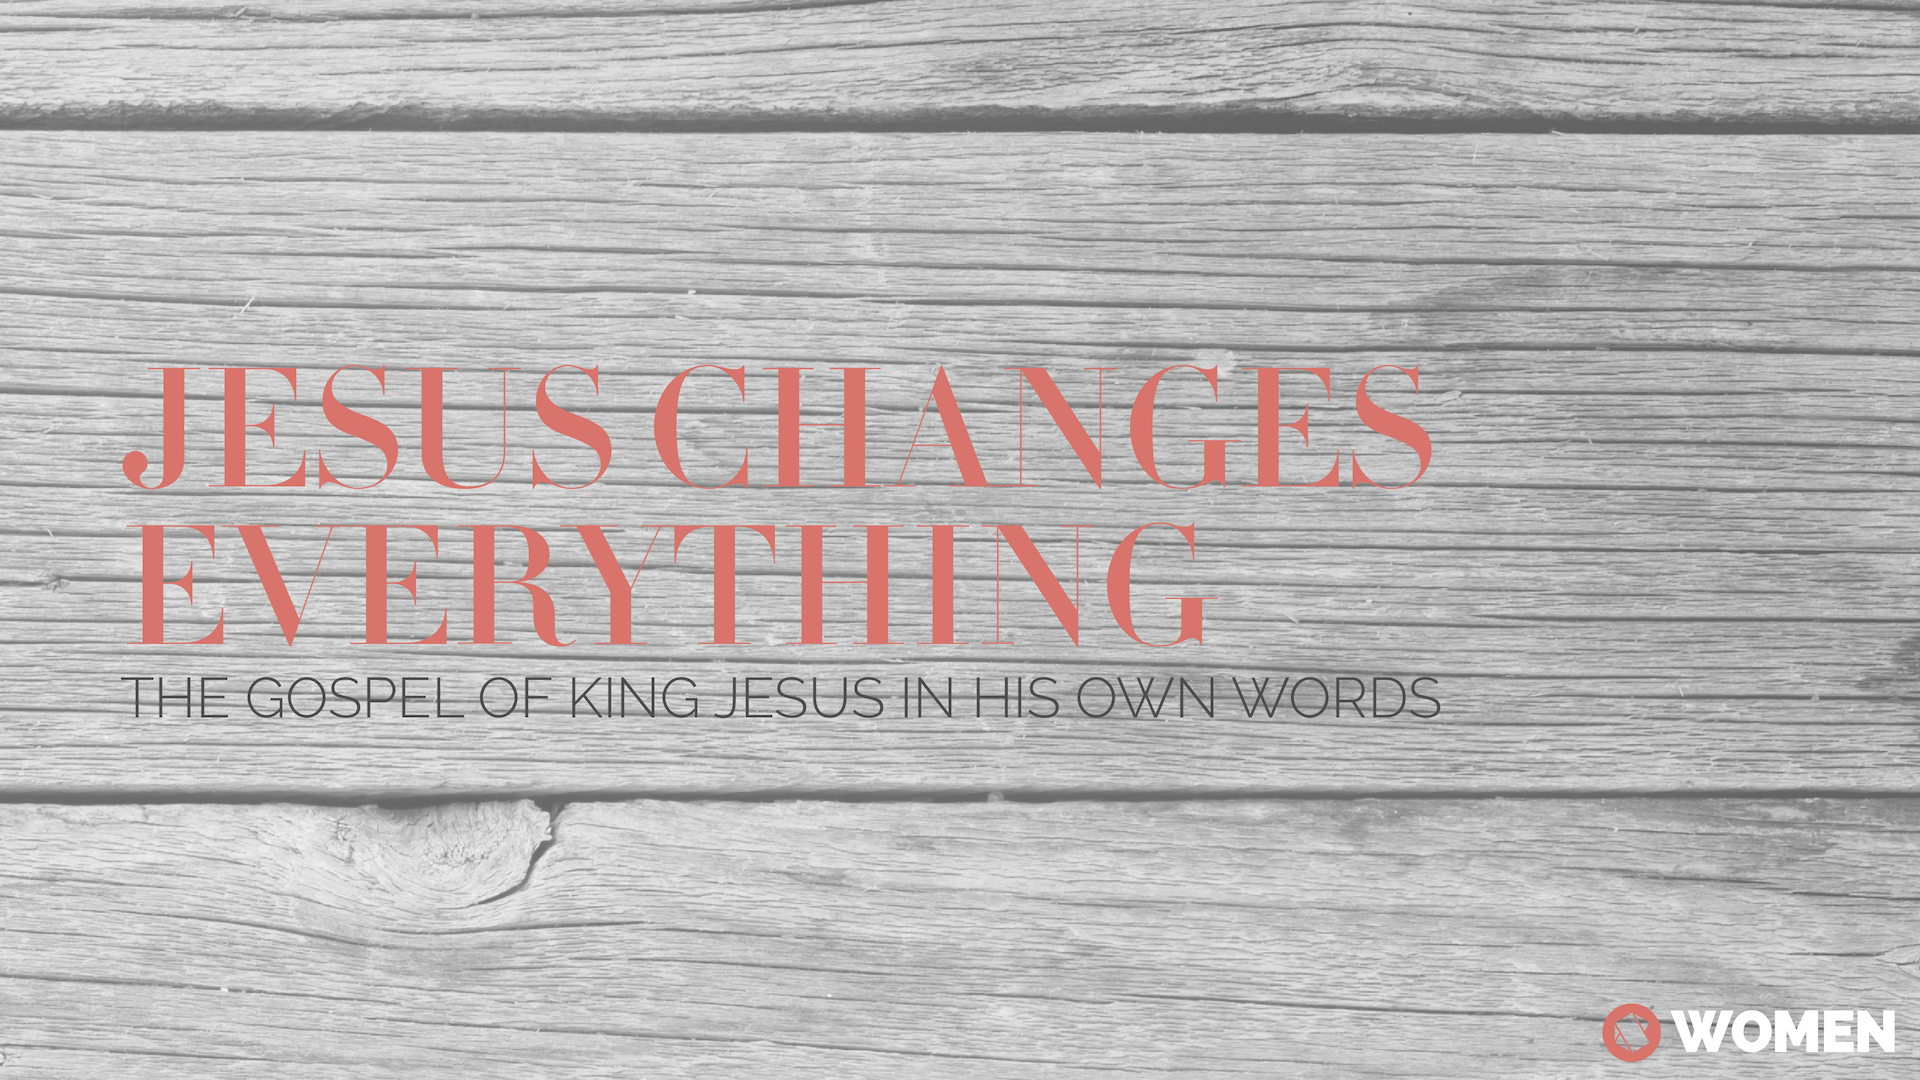 Jesus changes everything 1920 copy